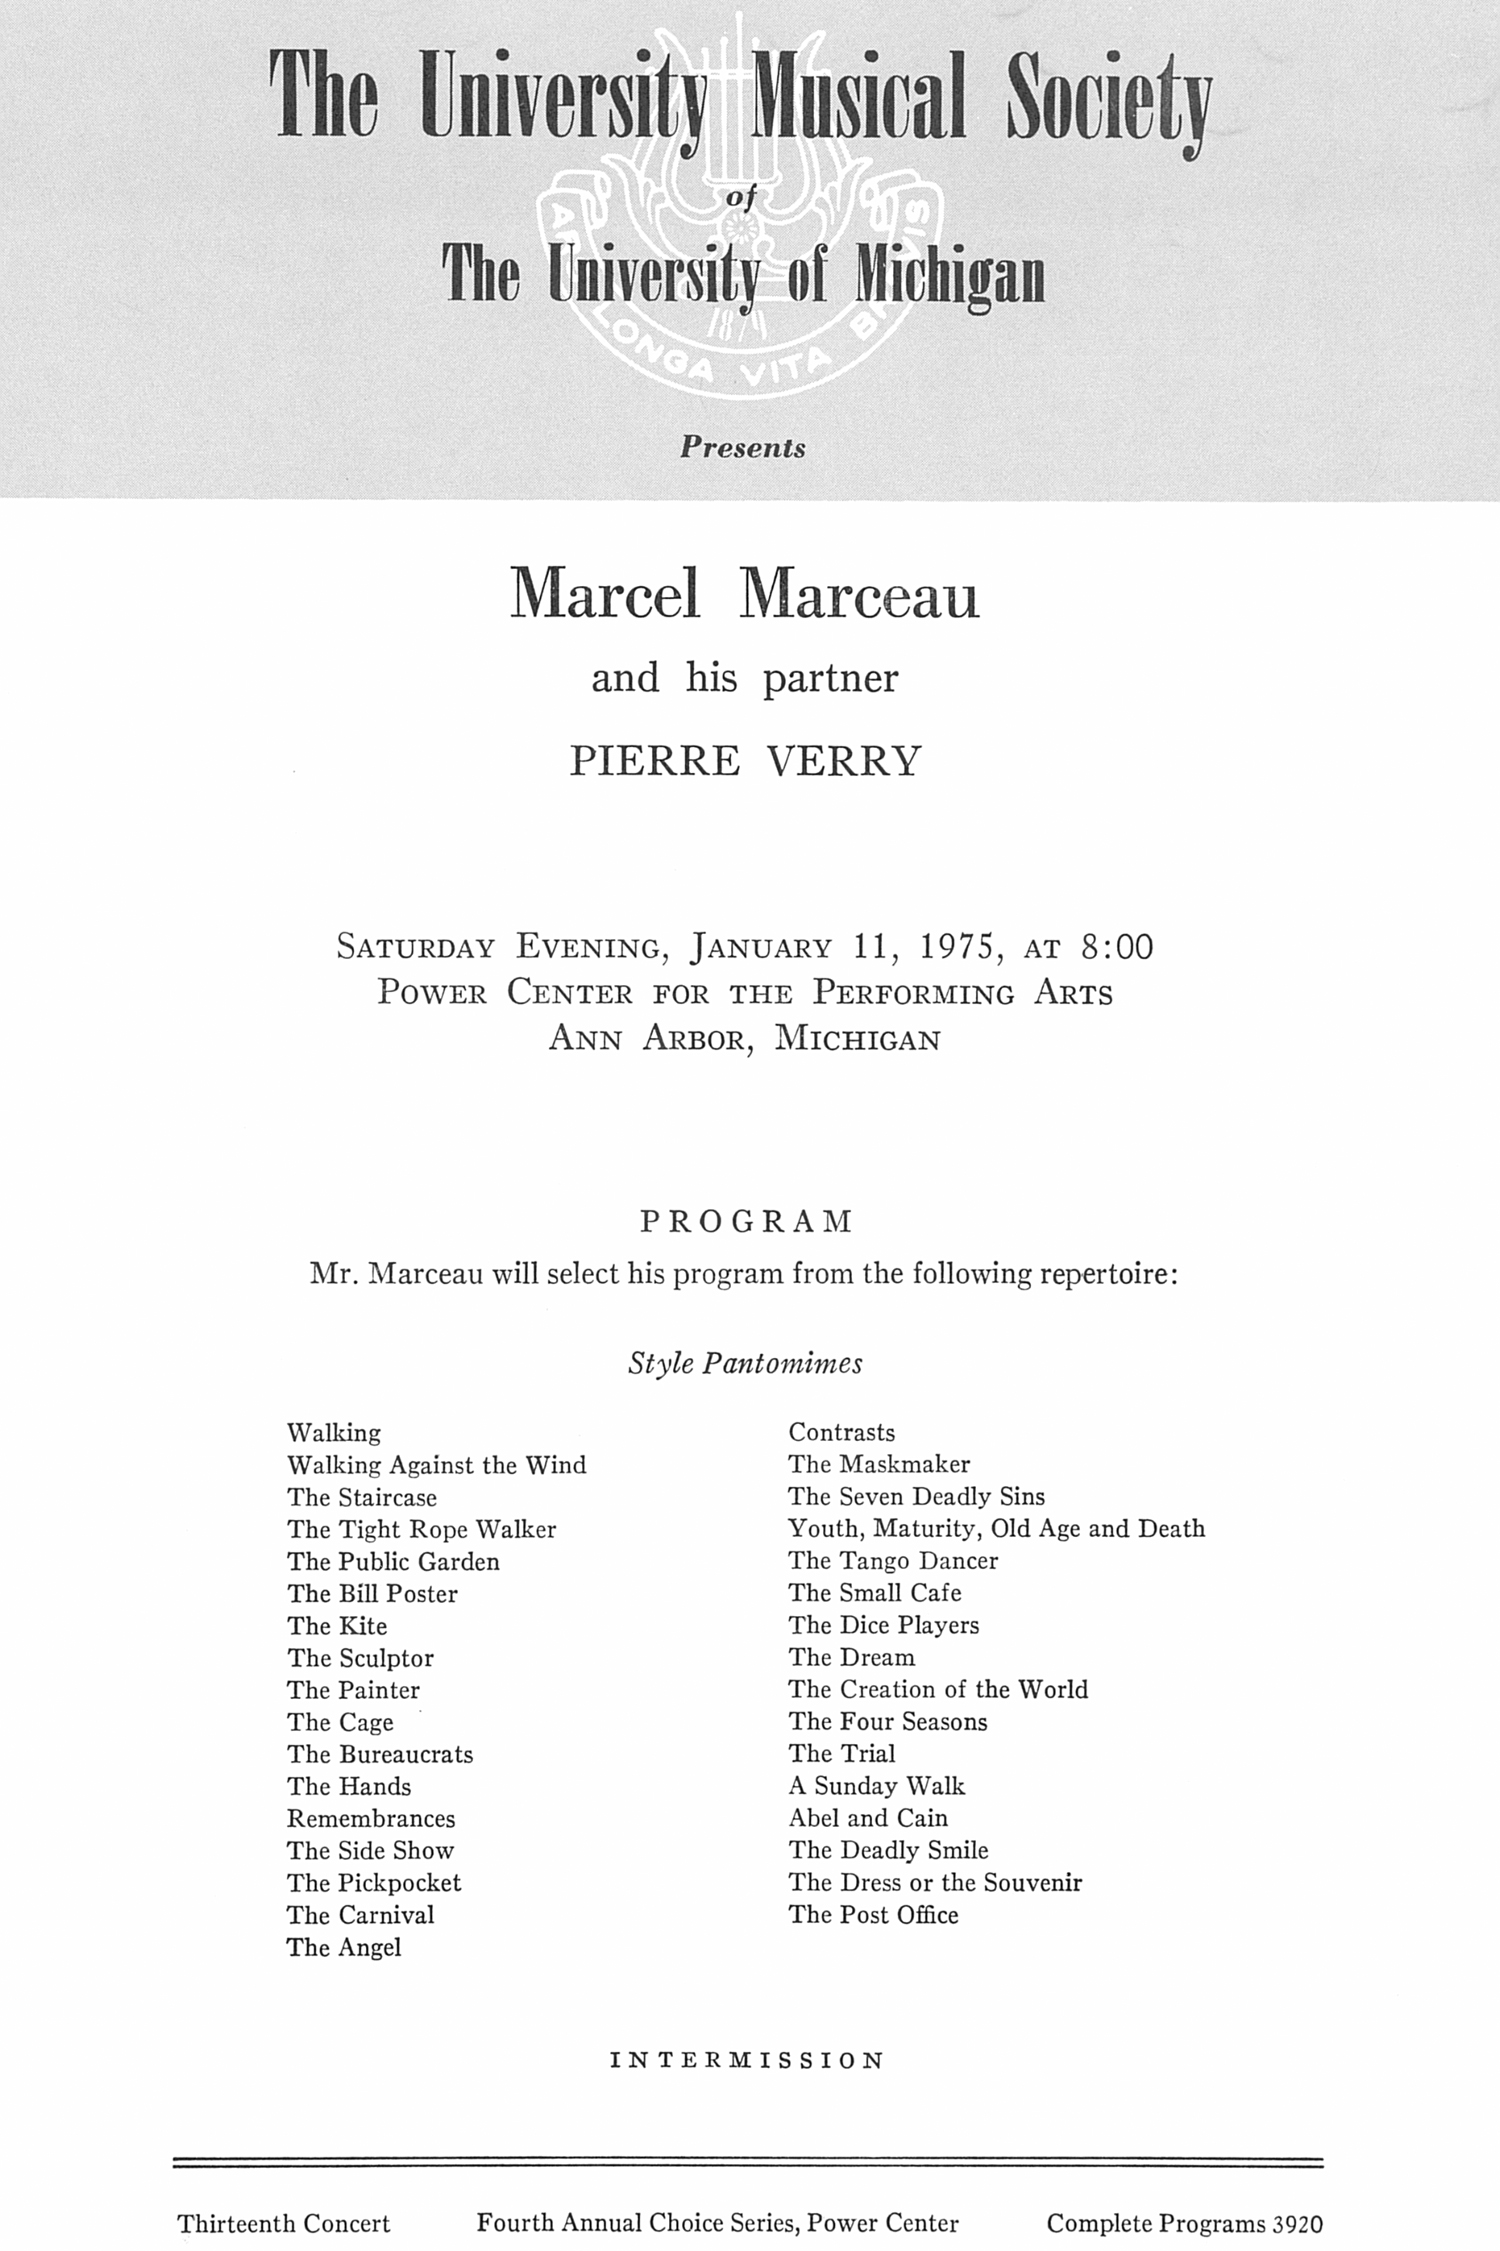 UMS Concert Program, January 11, 1975: Marcel Marceau And His Partner Pierre Verry --  image